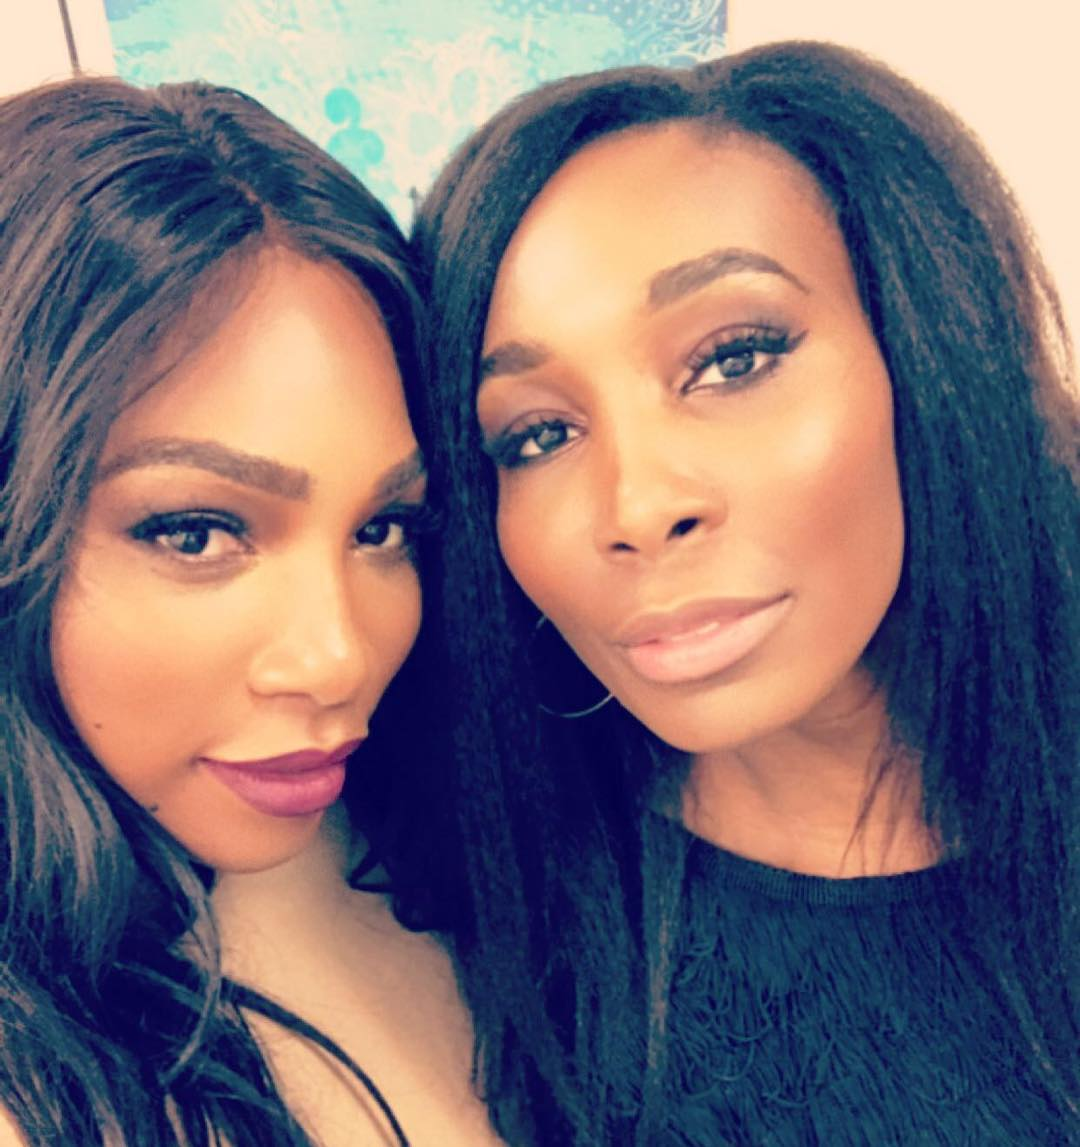 Picture Of Serena Williams Engagement Ring: See Why Serena Williams Engagement To Reddit Tech